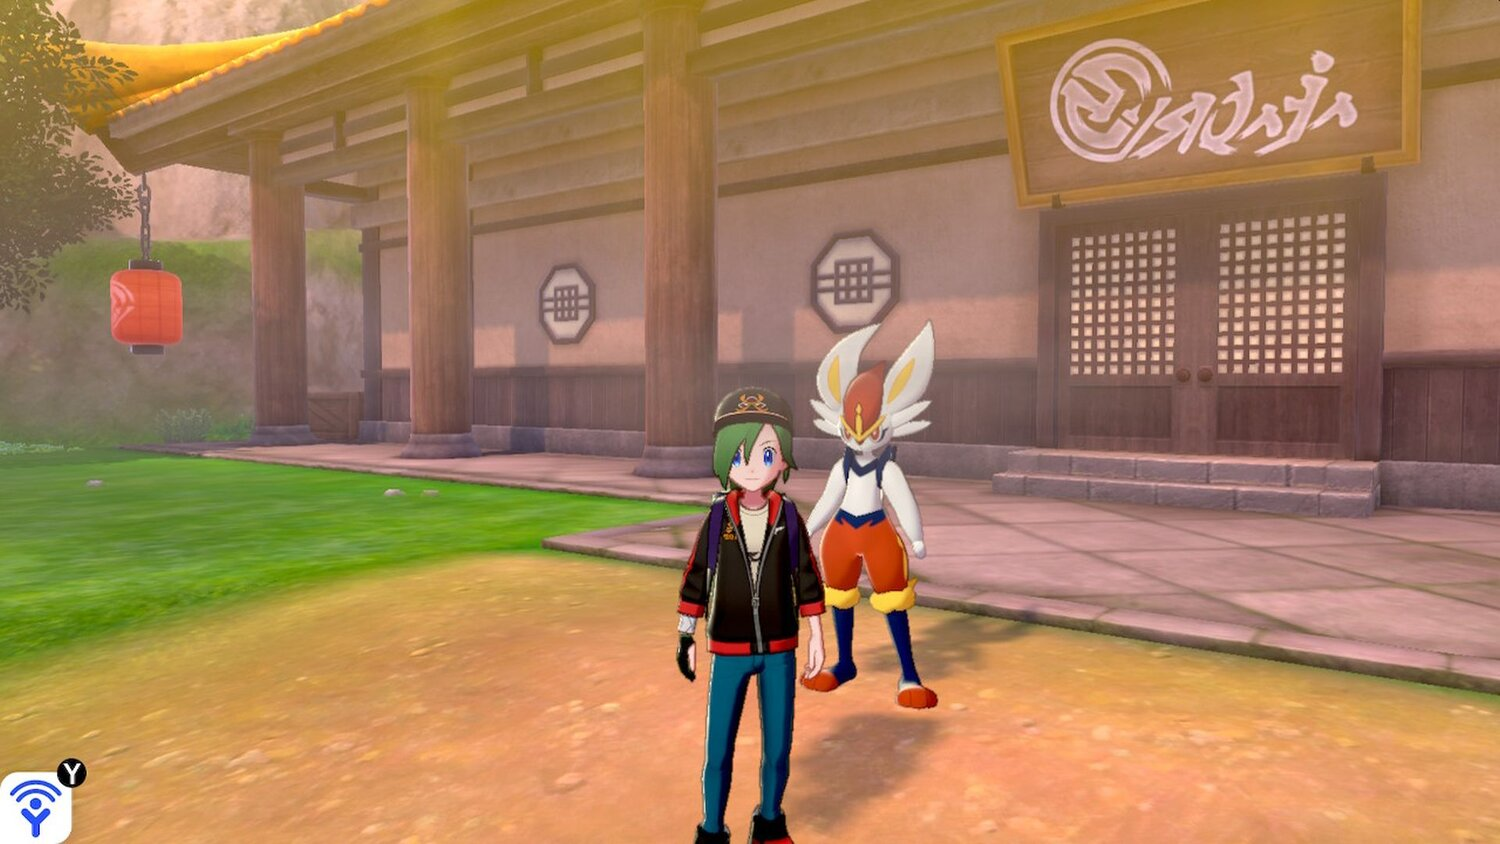 My First Impressions of POKÉMON SWORD and SHIELD ISLE OF ARMOR DLC